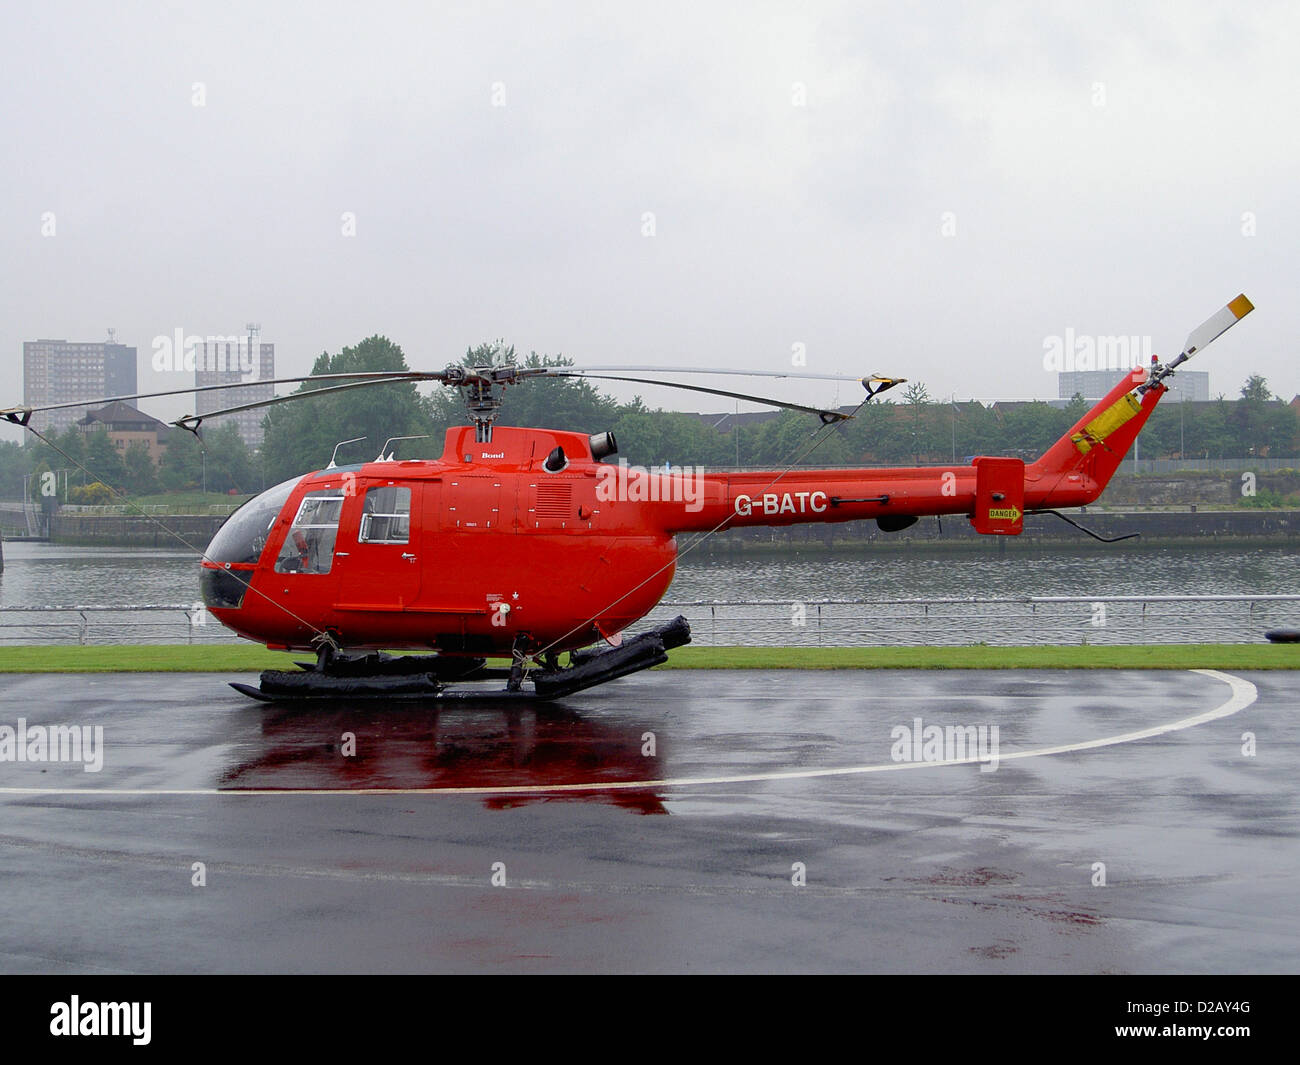 Helicopter G-BATC (Bolkow Bo105) at Heliport Airport (EGEG) in Glasgow, England - Stock Image